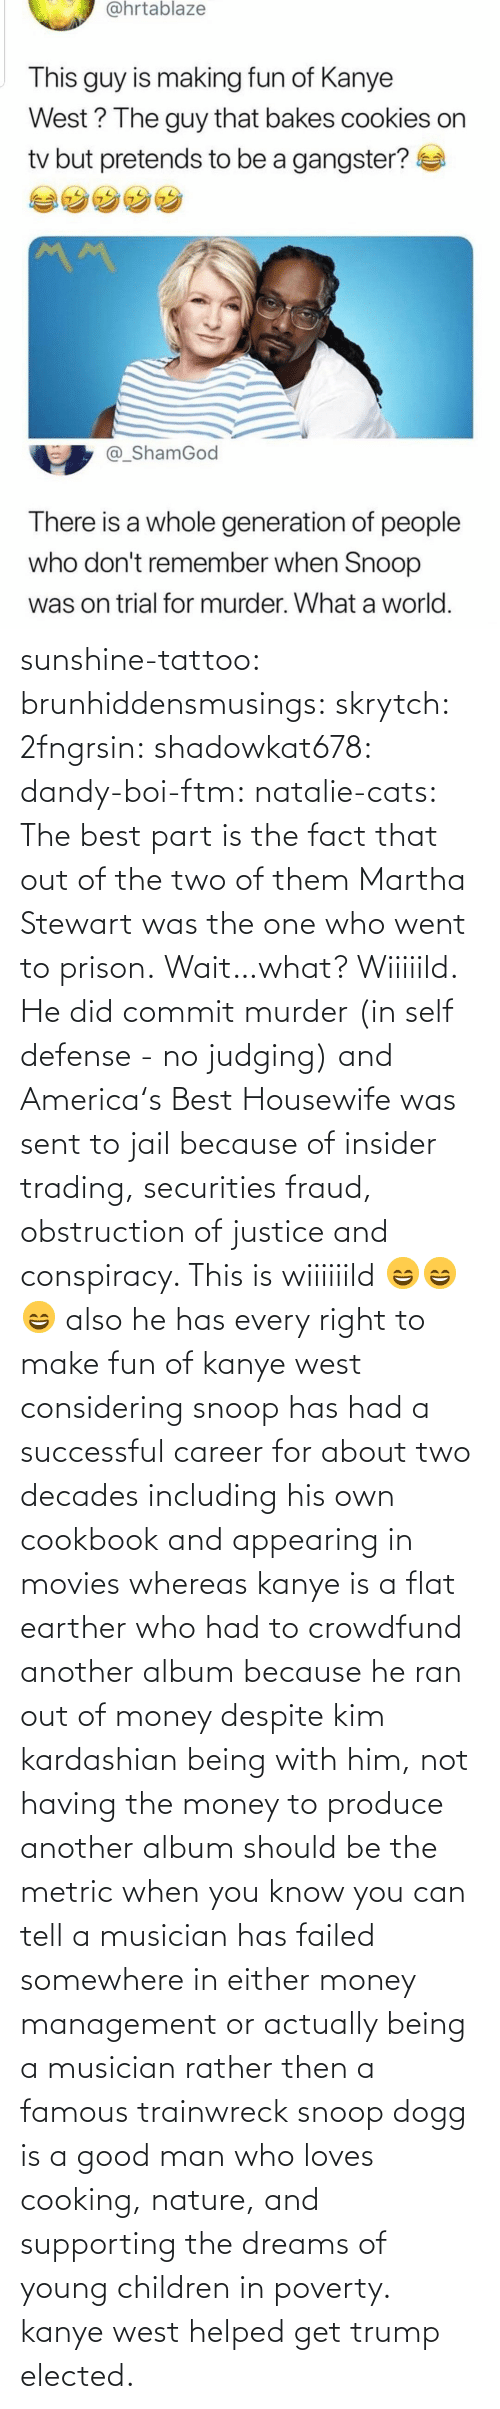 Kanye West: sunshine-tattoo: brunhiddensmusings:  skrytch:  2fngrsin:  shadowkat678:  dandy-boi-ftm:   natalie-cats:   The best part is the fact that out of the two of them Martha Stewart was the one who went to prison.   Wait…what?   Wiiiiild. He did commit murder (in self defense - no judging) and America's Best Housewife was sent to jail because of insider trading, securities fraud, obstruction of justice and conspiracy. This is wiiiiiild 😄😄😄    also he has every right to make fun of kanye west considering snoop has had a successful career for about two decades including his own cookbook and appearing in movies whereas kanye is a flat earther who had to crowdfund another album because he ran out of money despite kim kardashian being with him, not having the money to produce another album should be the metric when you know you can tell a musician has failed somewhere in either money management or actually being a musician rather then a famous trainwreck   snoop dogg is a good man who loves cooking, nature, and supporting the dreams of young children in poverty. kanye west helped get trump elected.